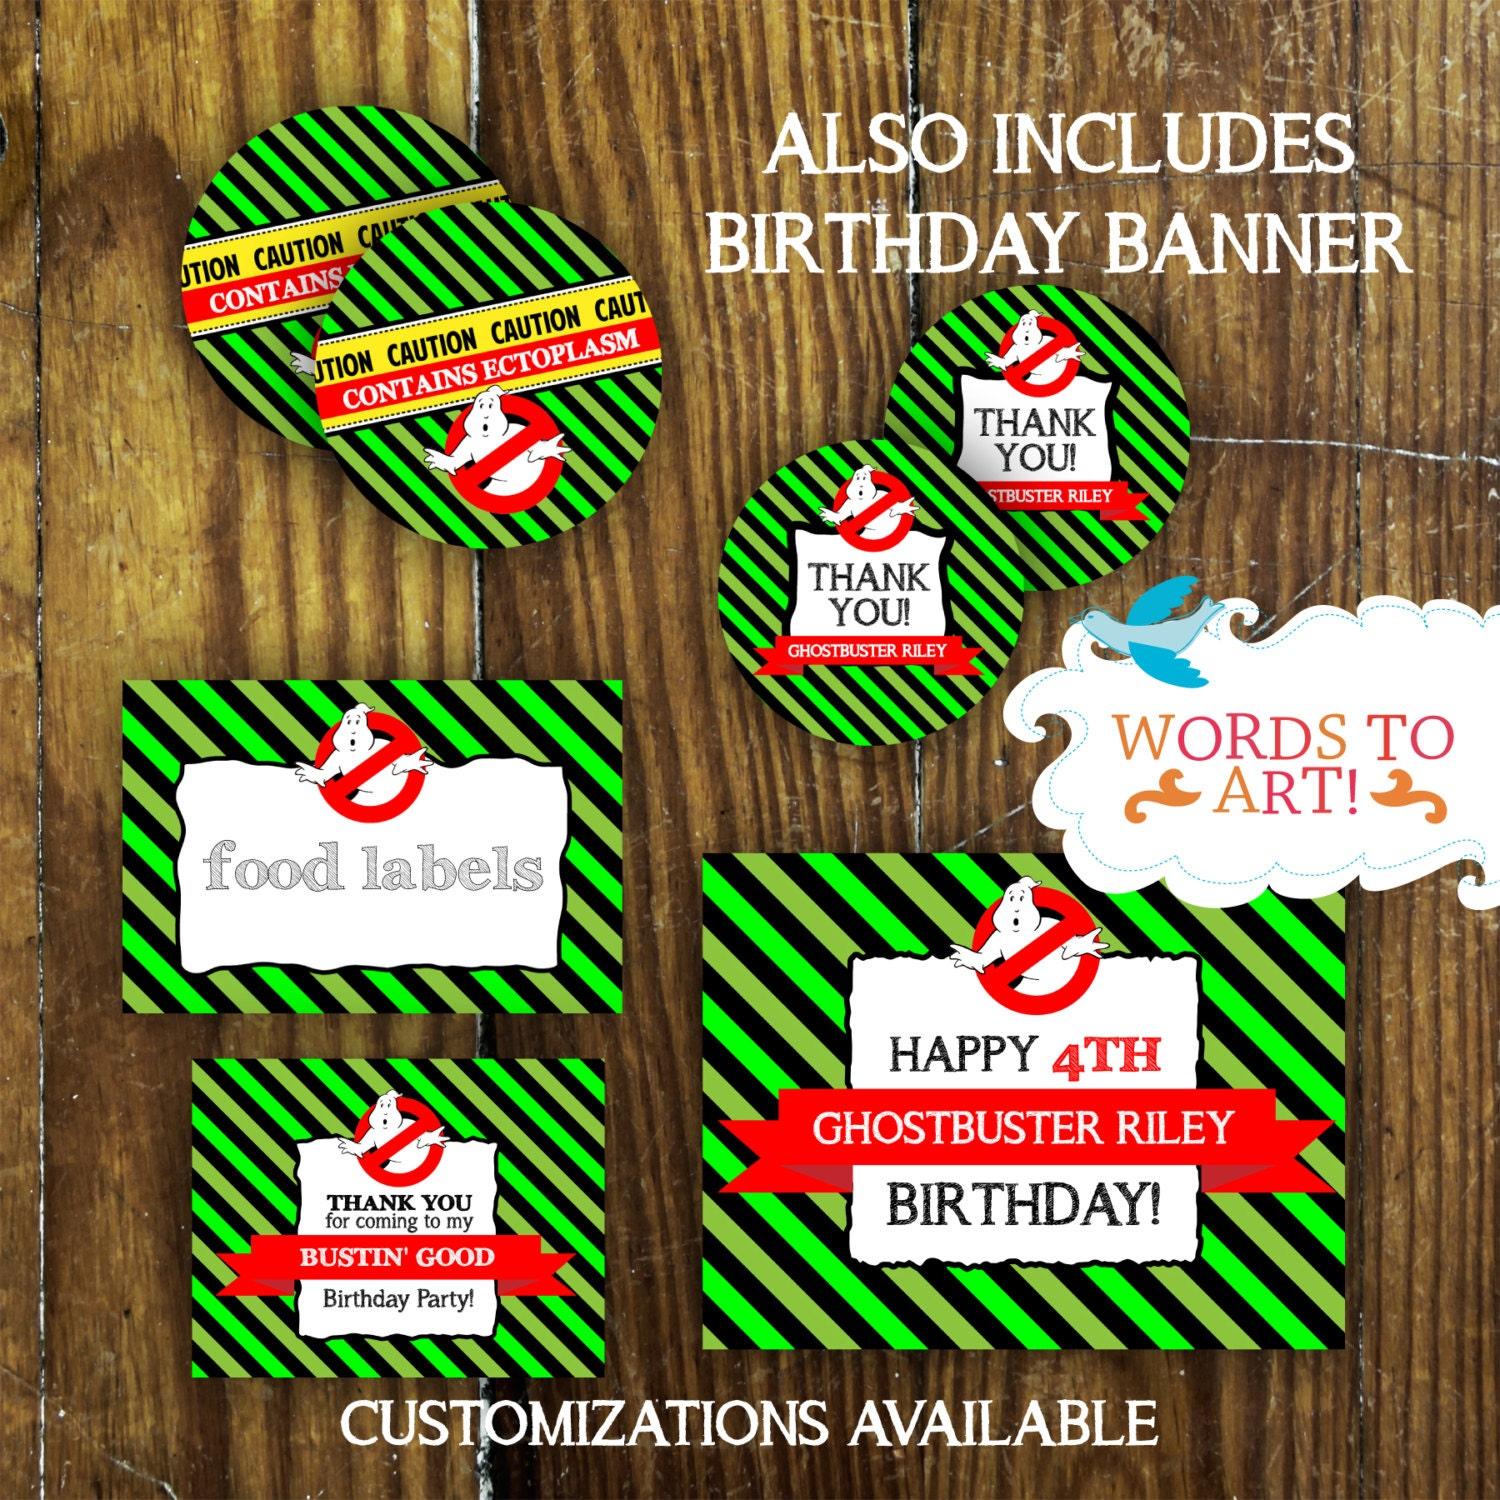 CUSTOM Ghostbusters Birthday Party Theme PARTY PACKAGE